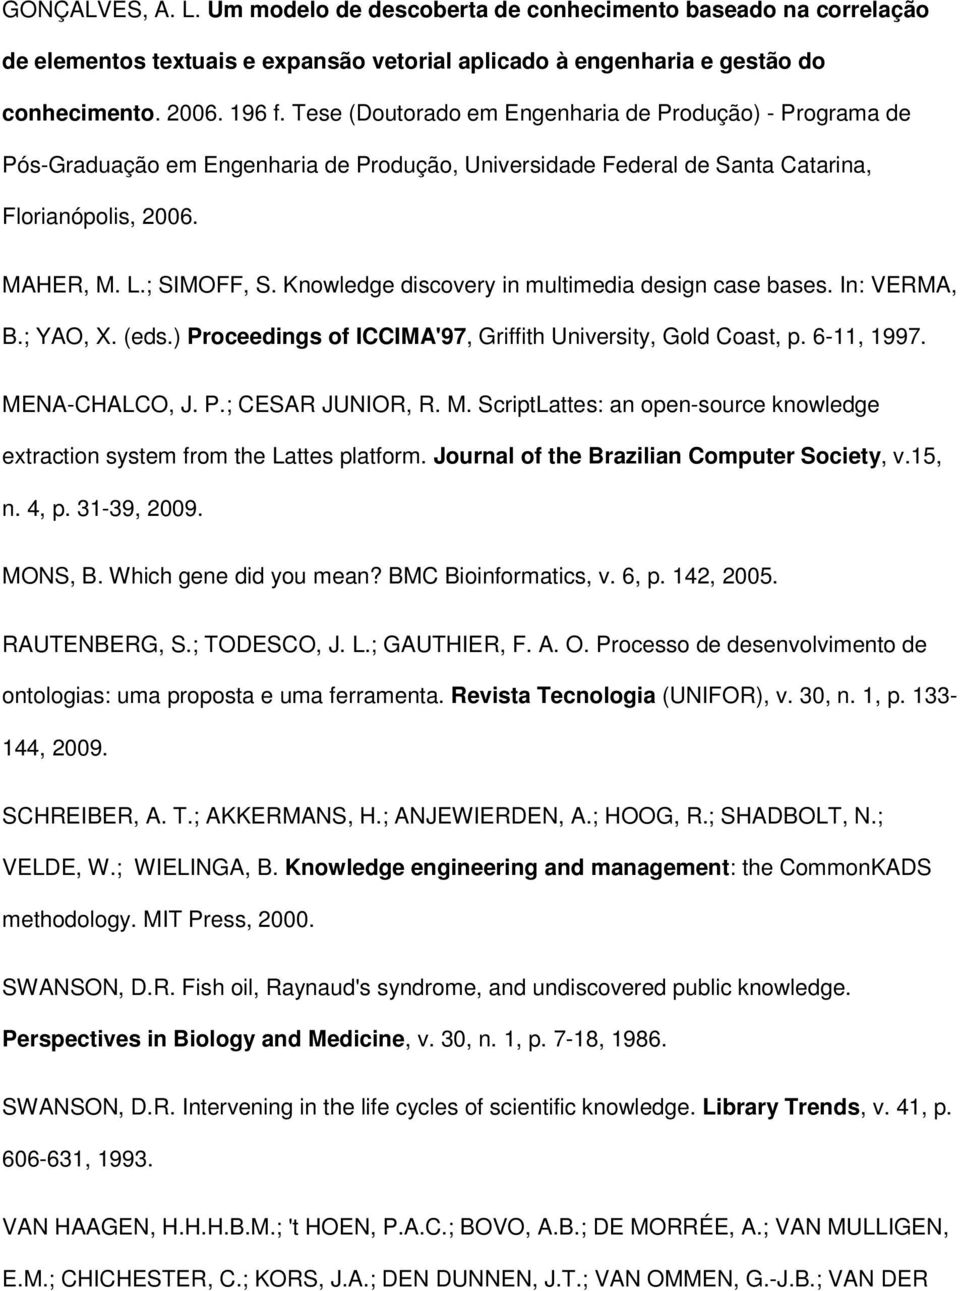 Knowledge discovery in multimedia design case bases. In: VERMA, B.; YAO, X. (eds.) Proceedings of ICCIMA'97, Griffith University, Gold Coast, p. 6-11, 1997. ME